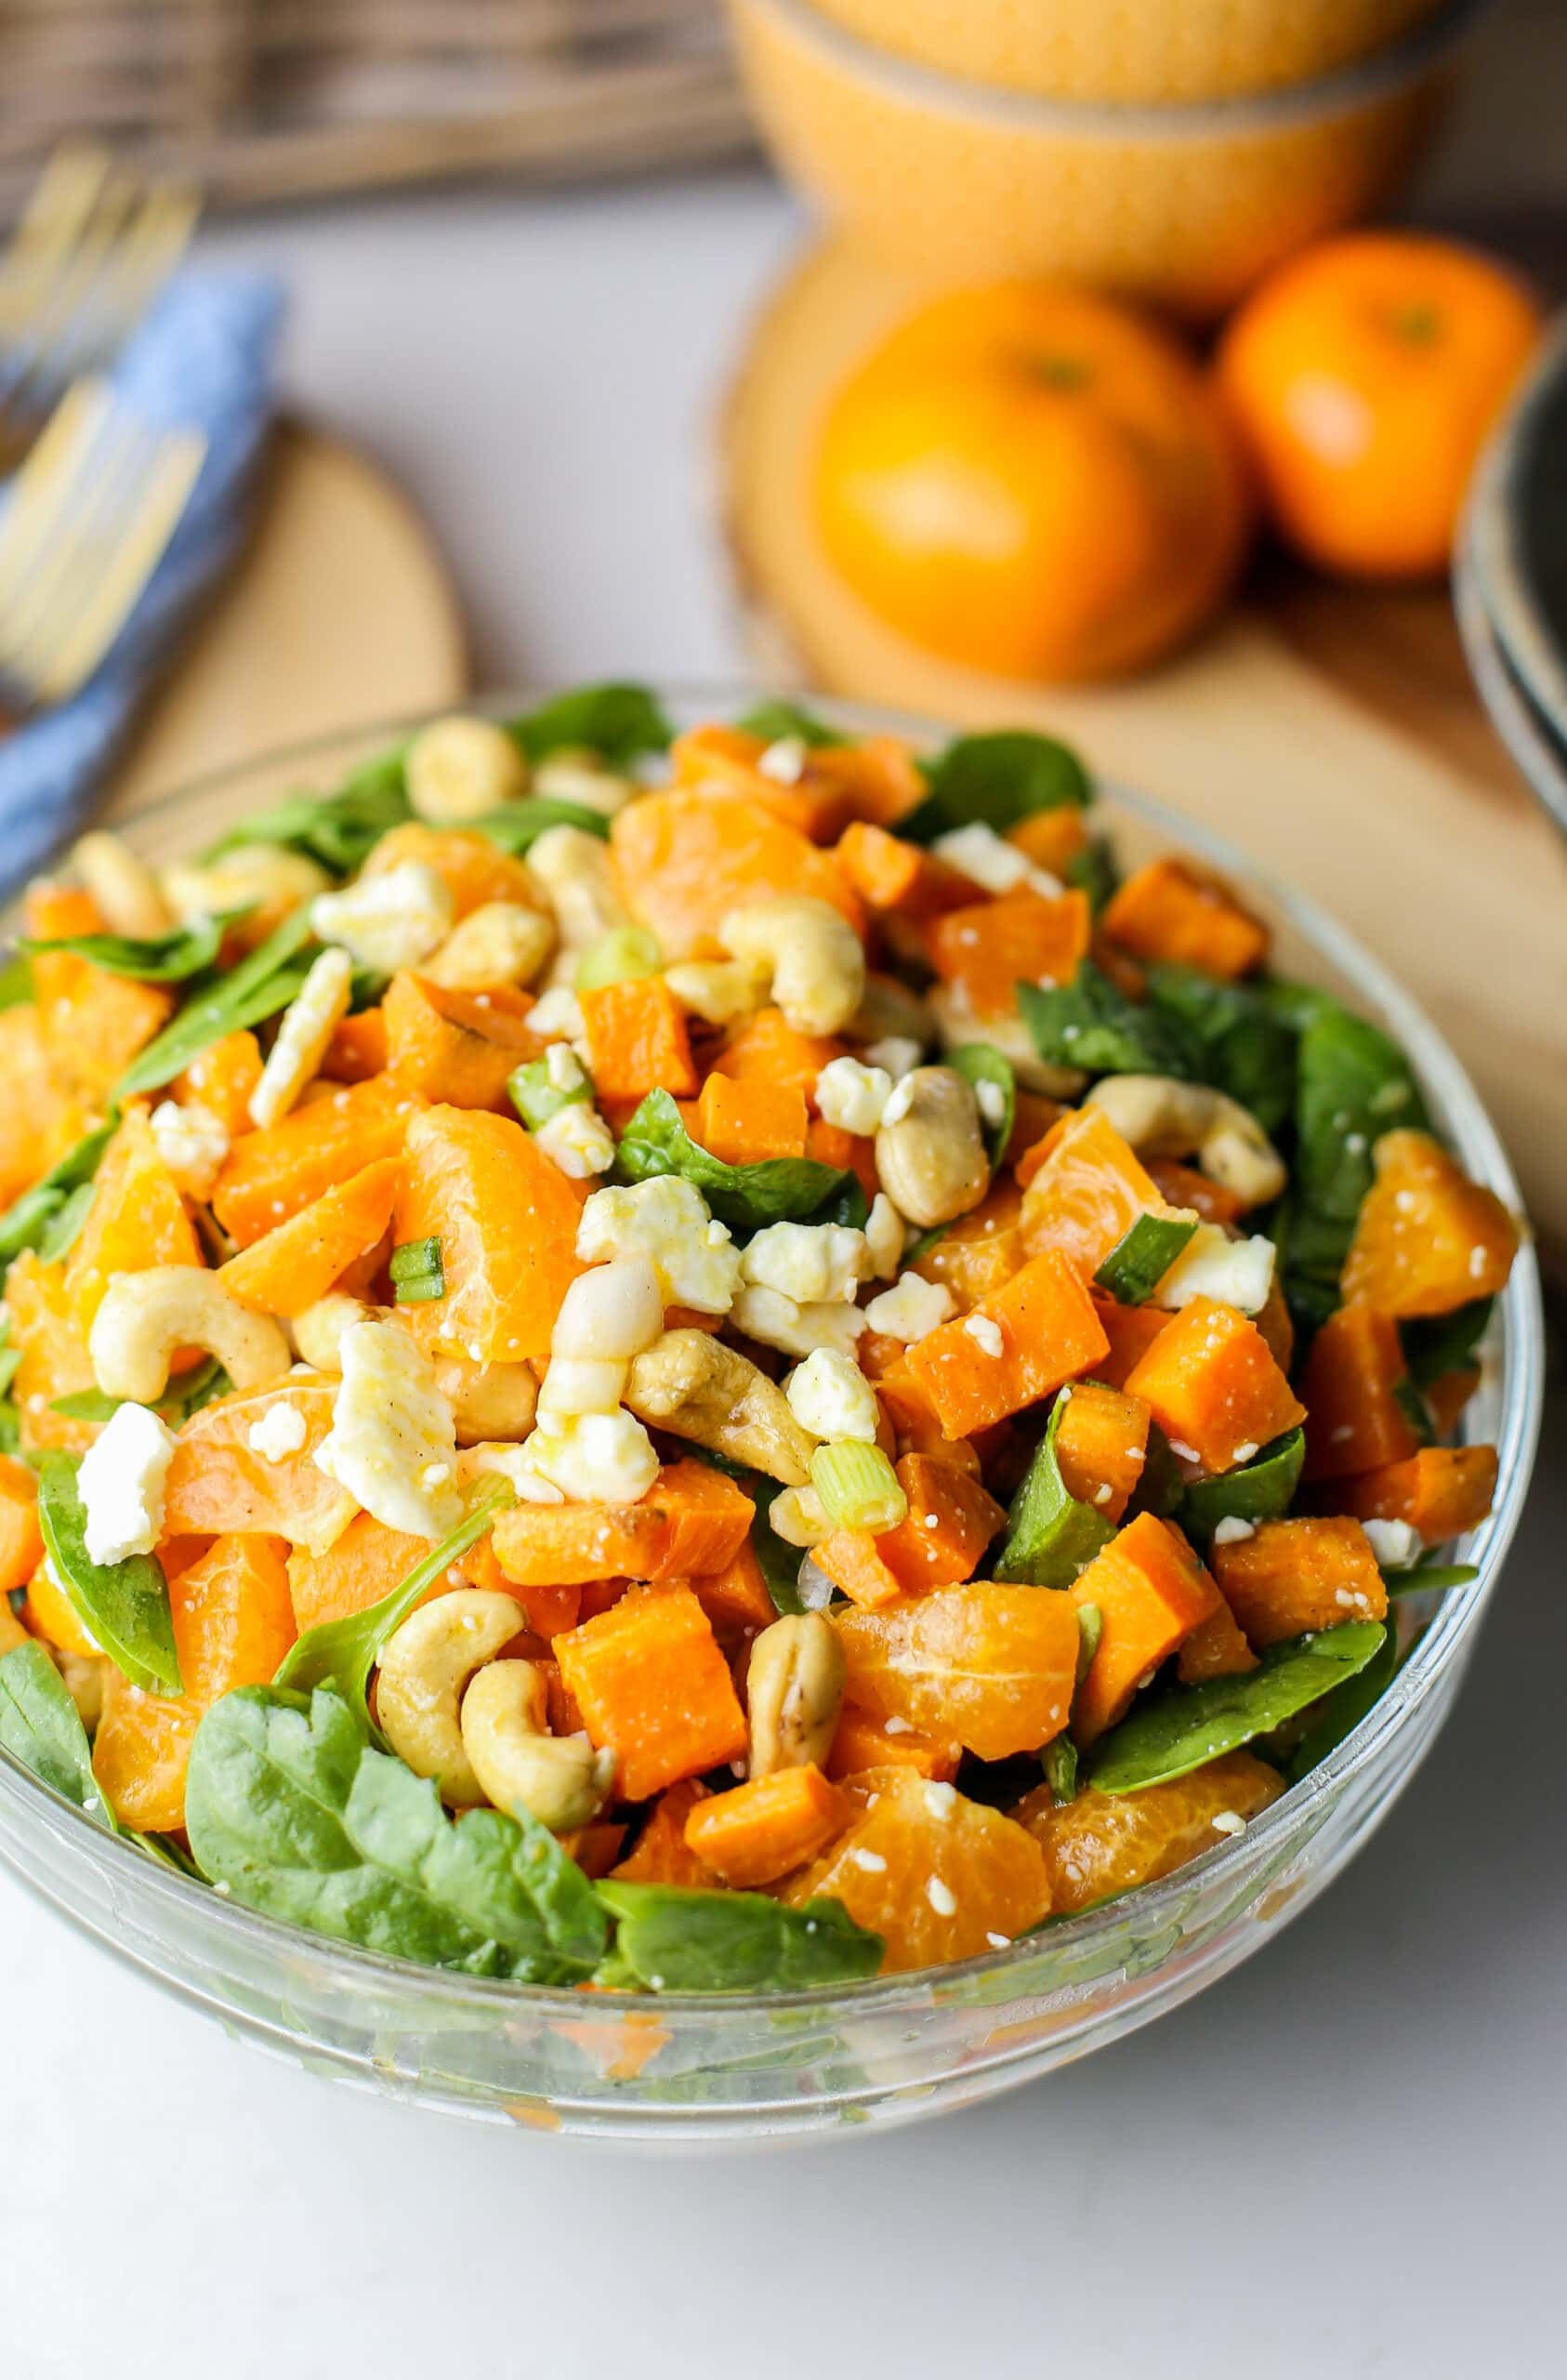 Sweet potato salad with feta, cashews, oranges, and spinach combined in a glass bowl.